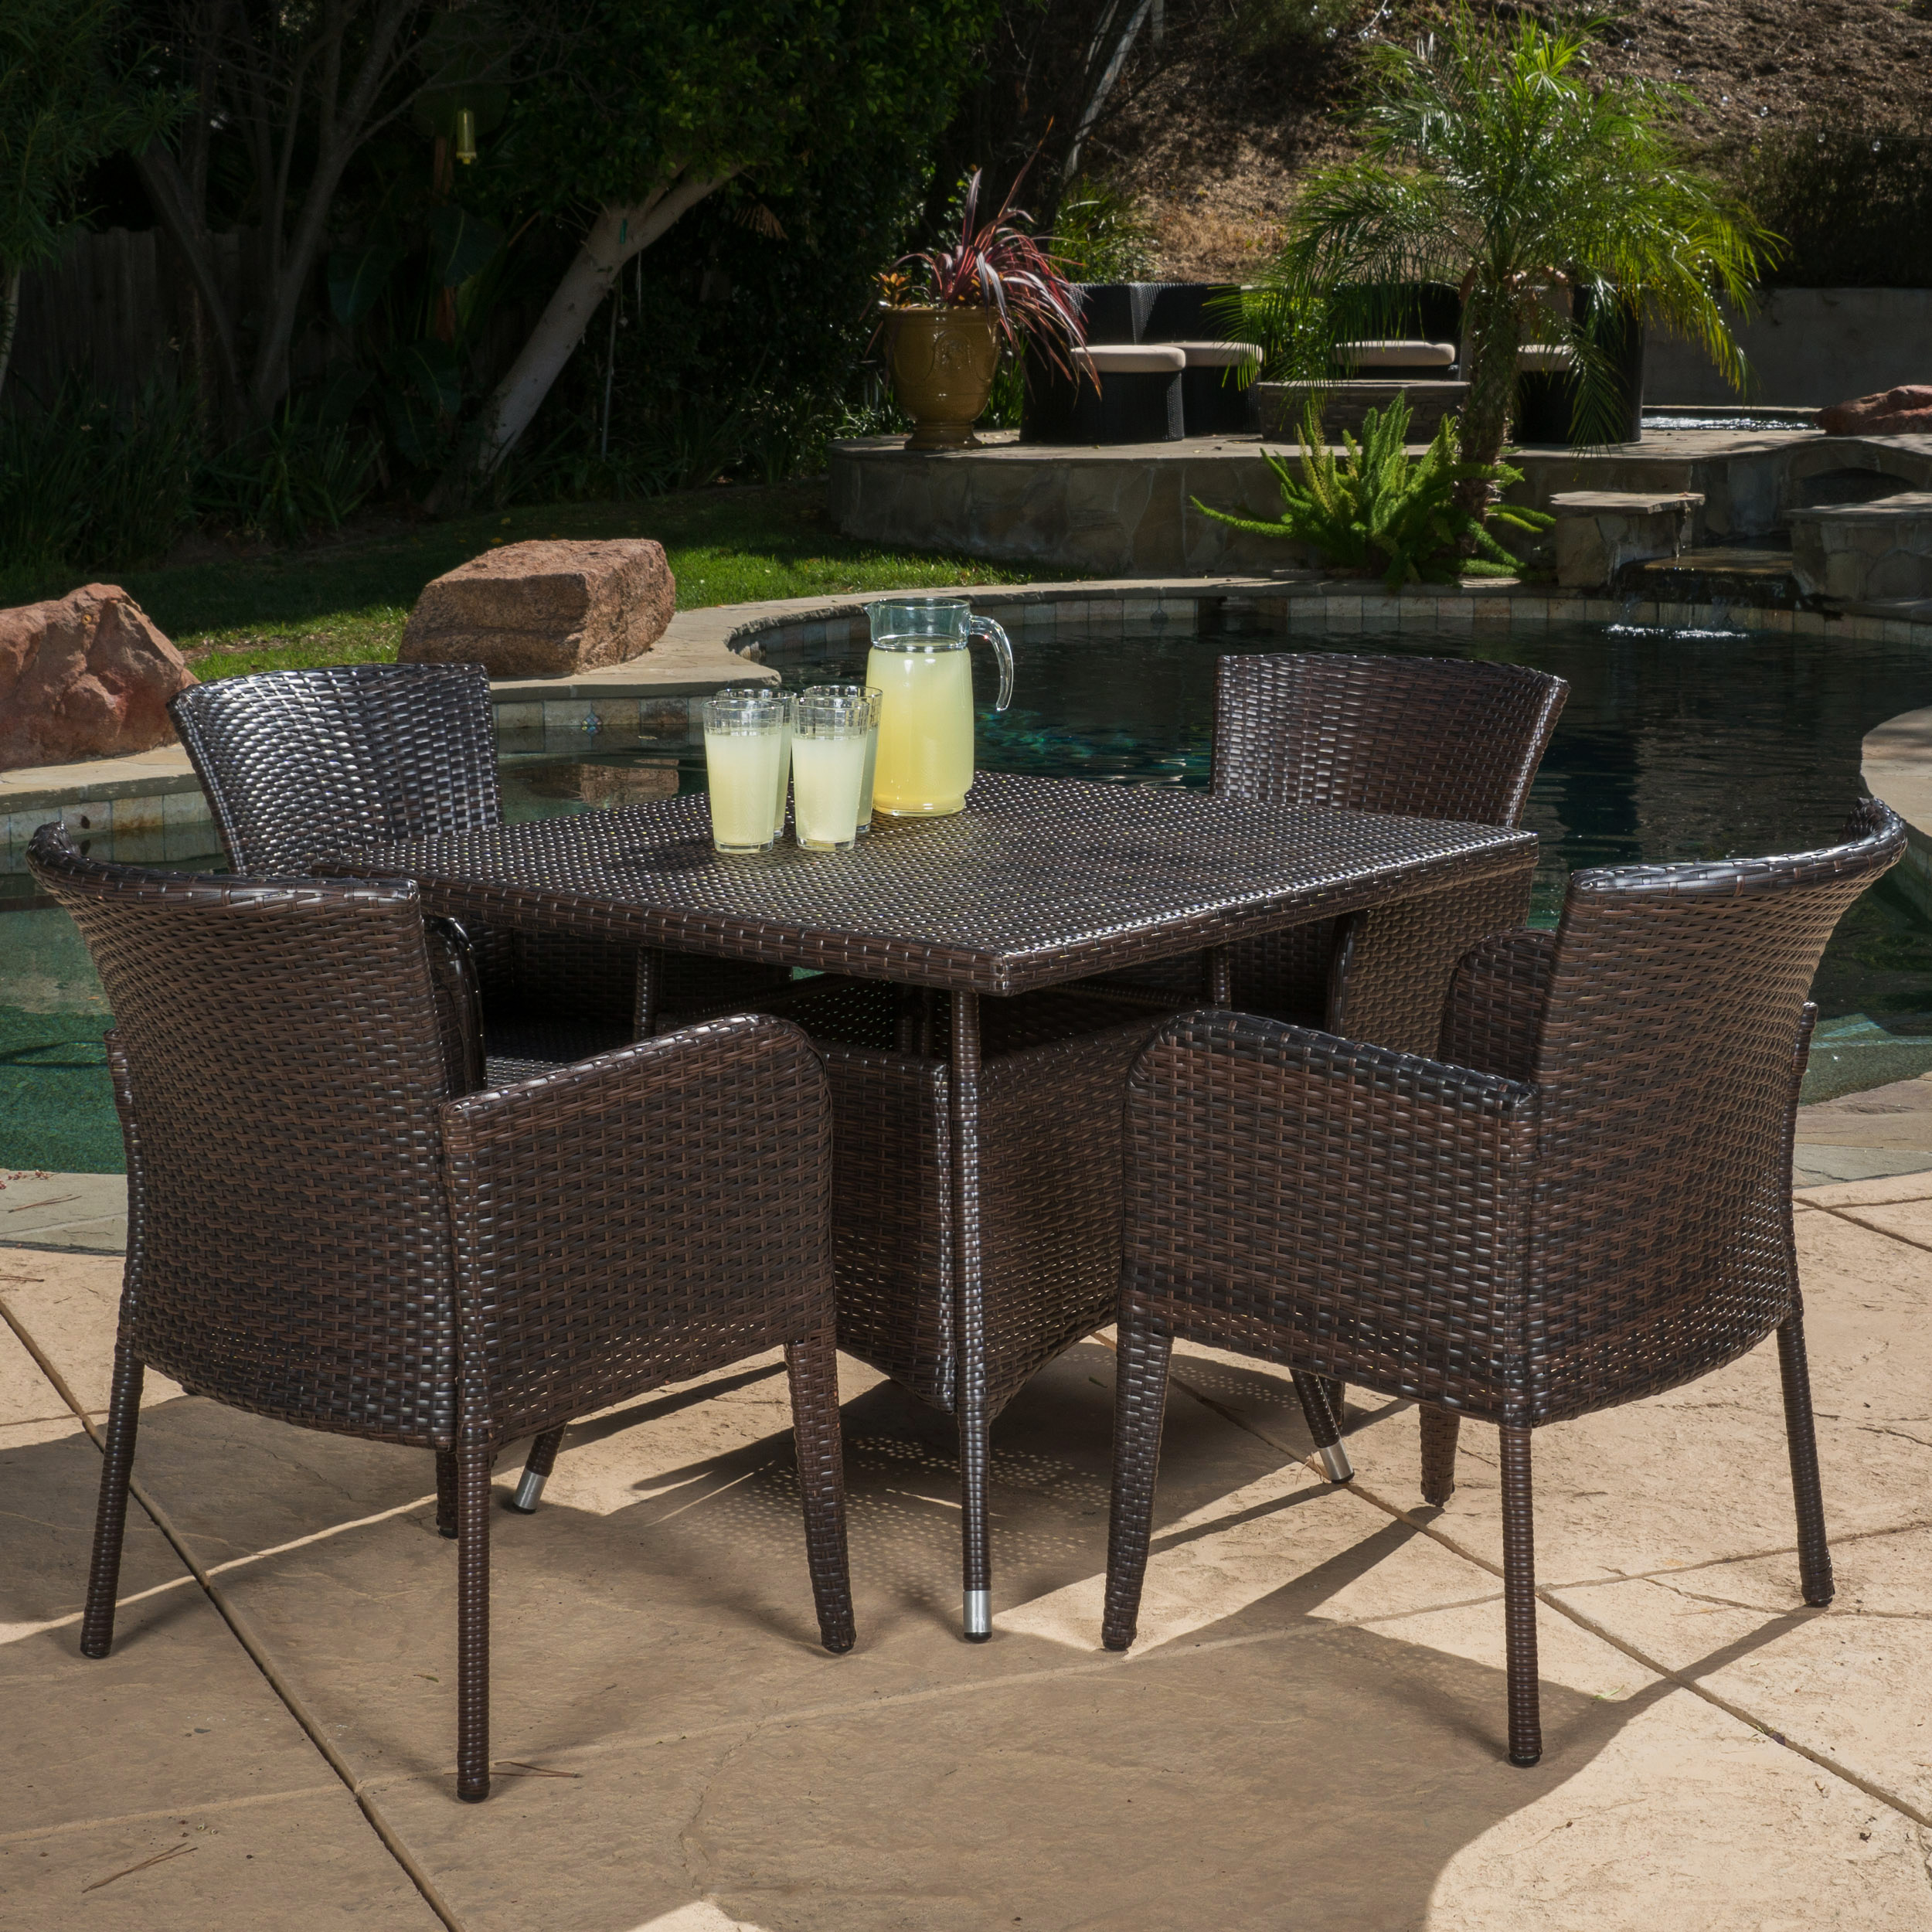 Ramsey 5 Piece Outdoor Square Wicker Dining Set, Multibrown